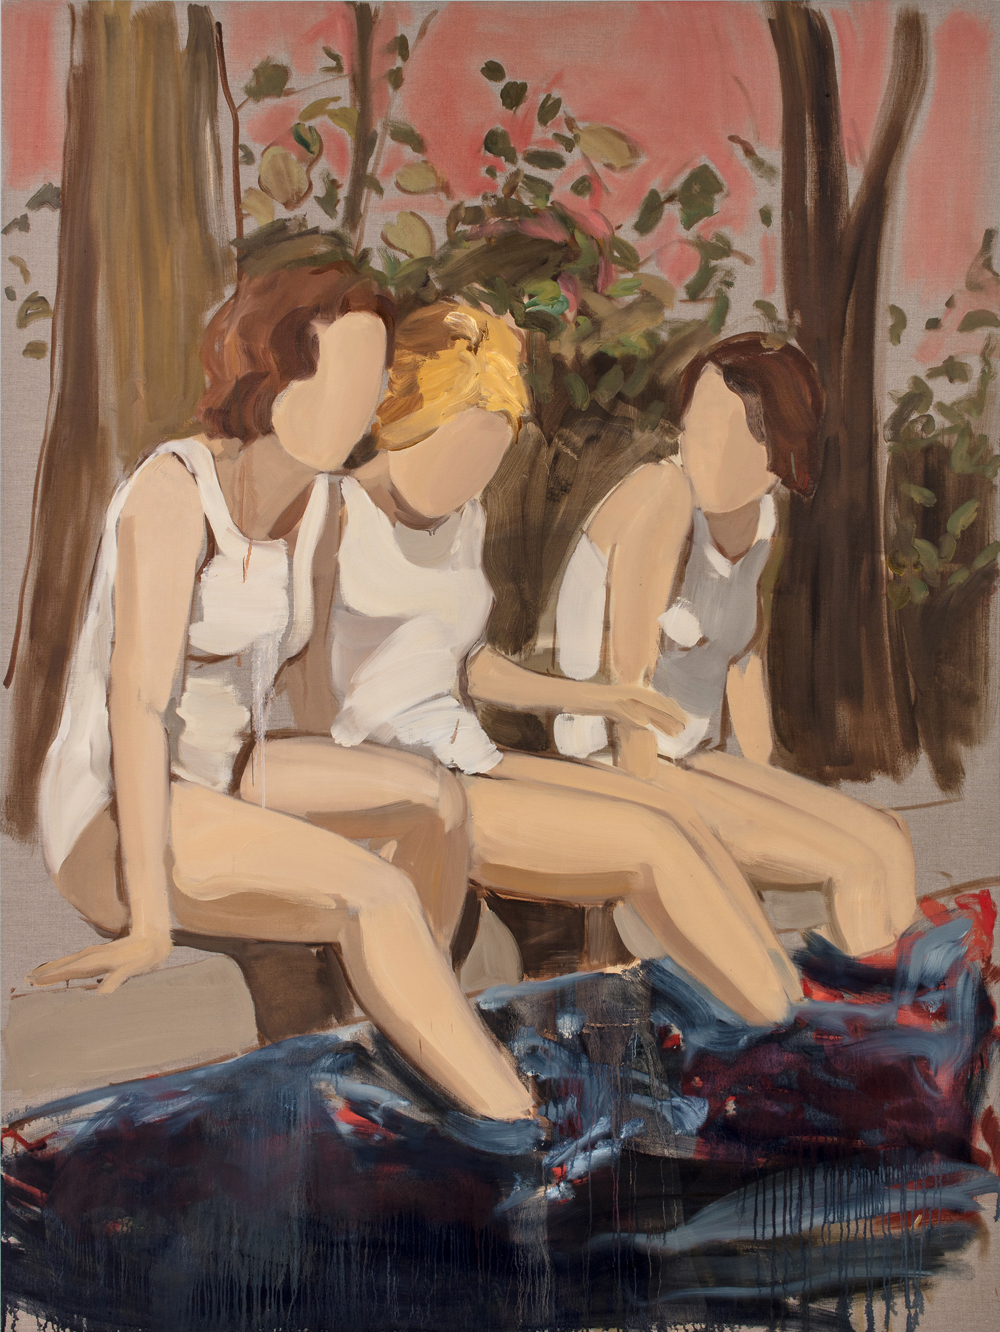 Three-Girls-200x150cm-Oil-On-Linen-2017.jpg